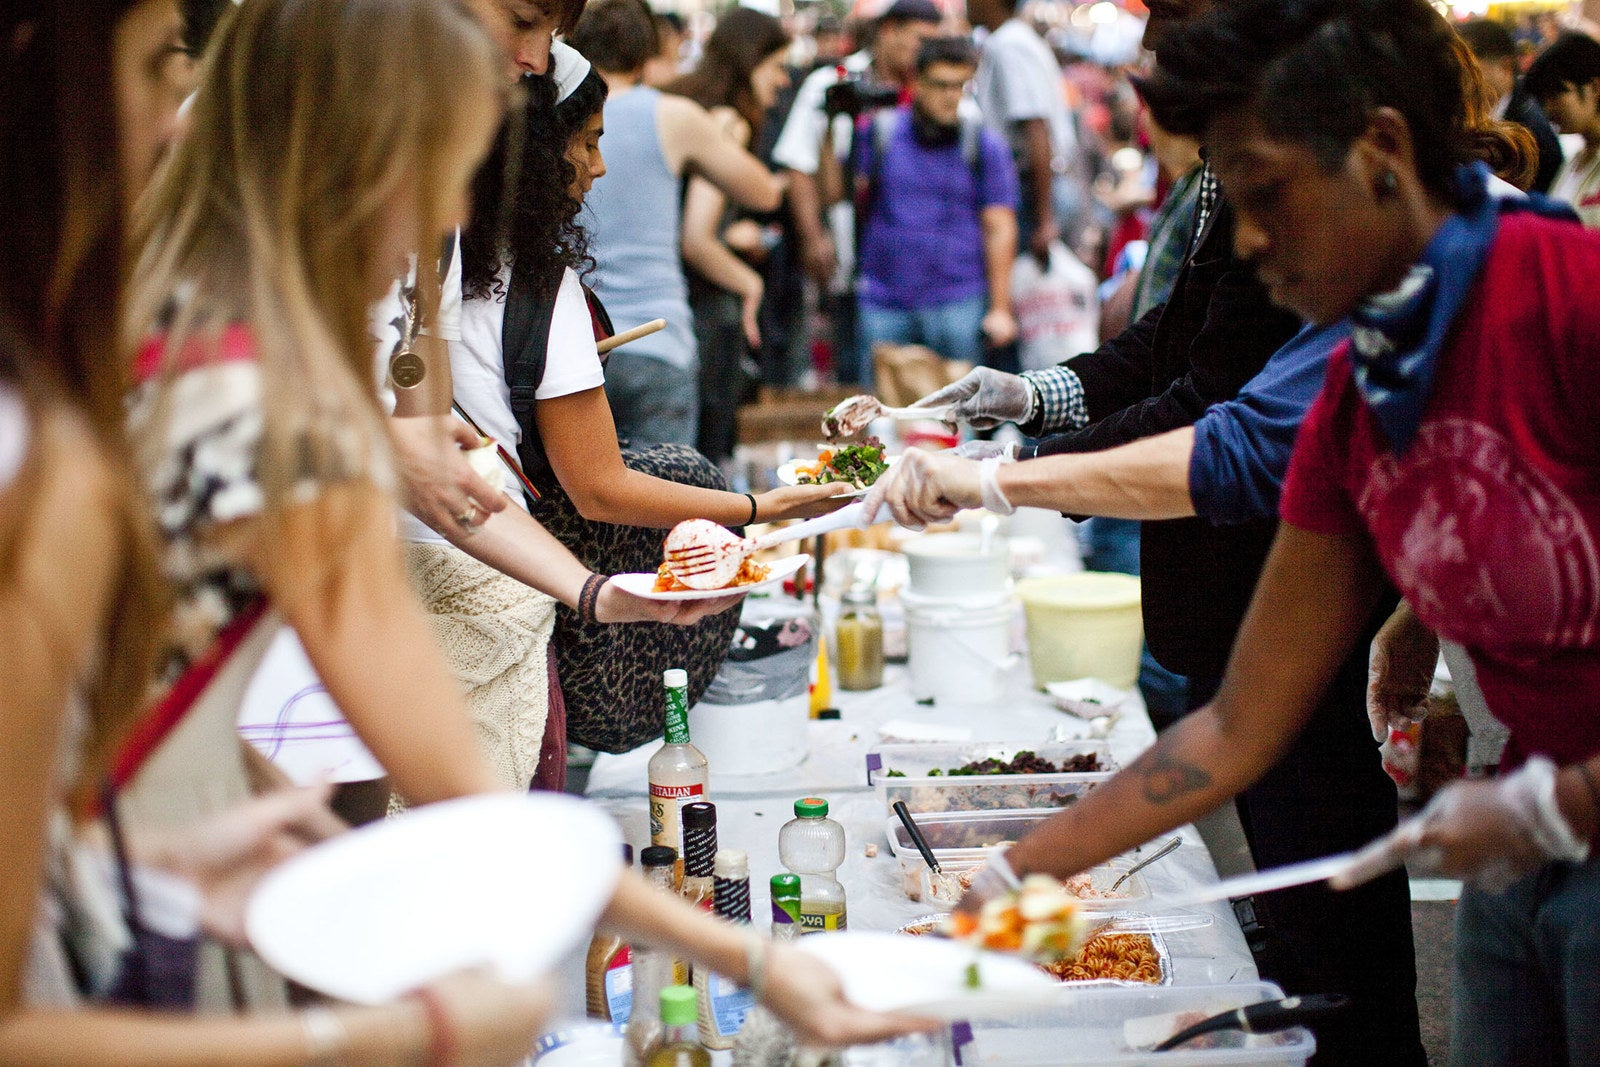 Volunteers serve food to protesters at Zuccotti Park on Oct. 8, 2011.